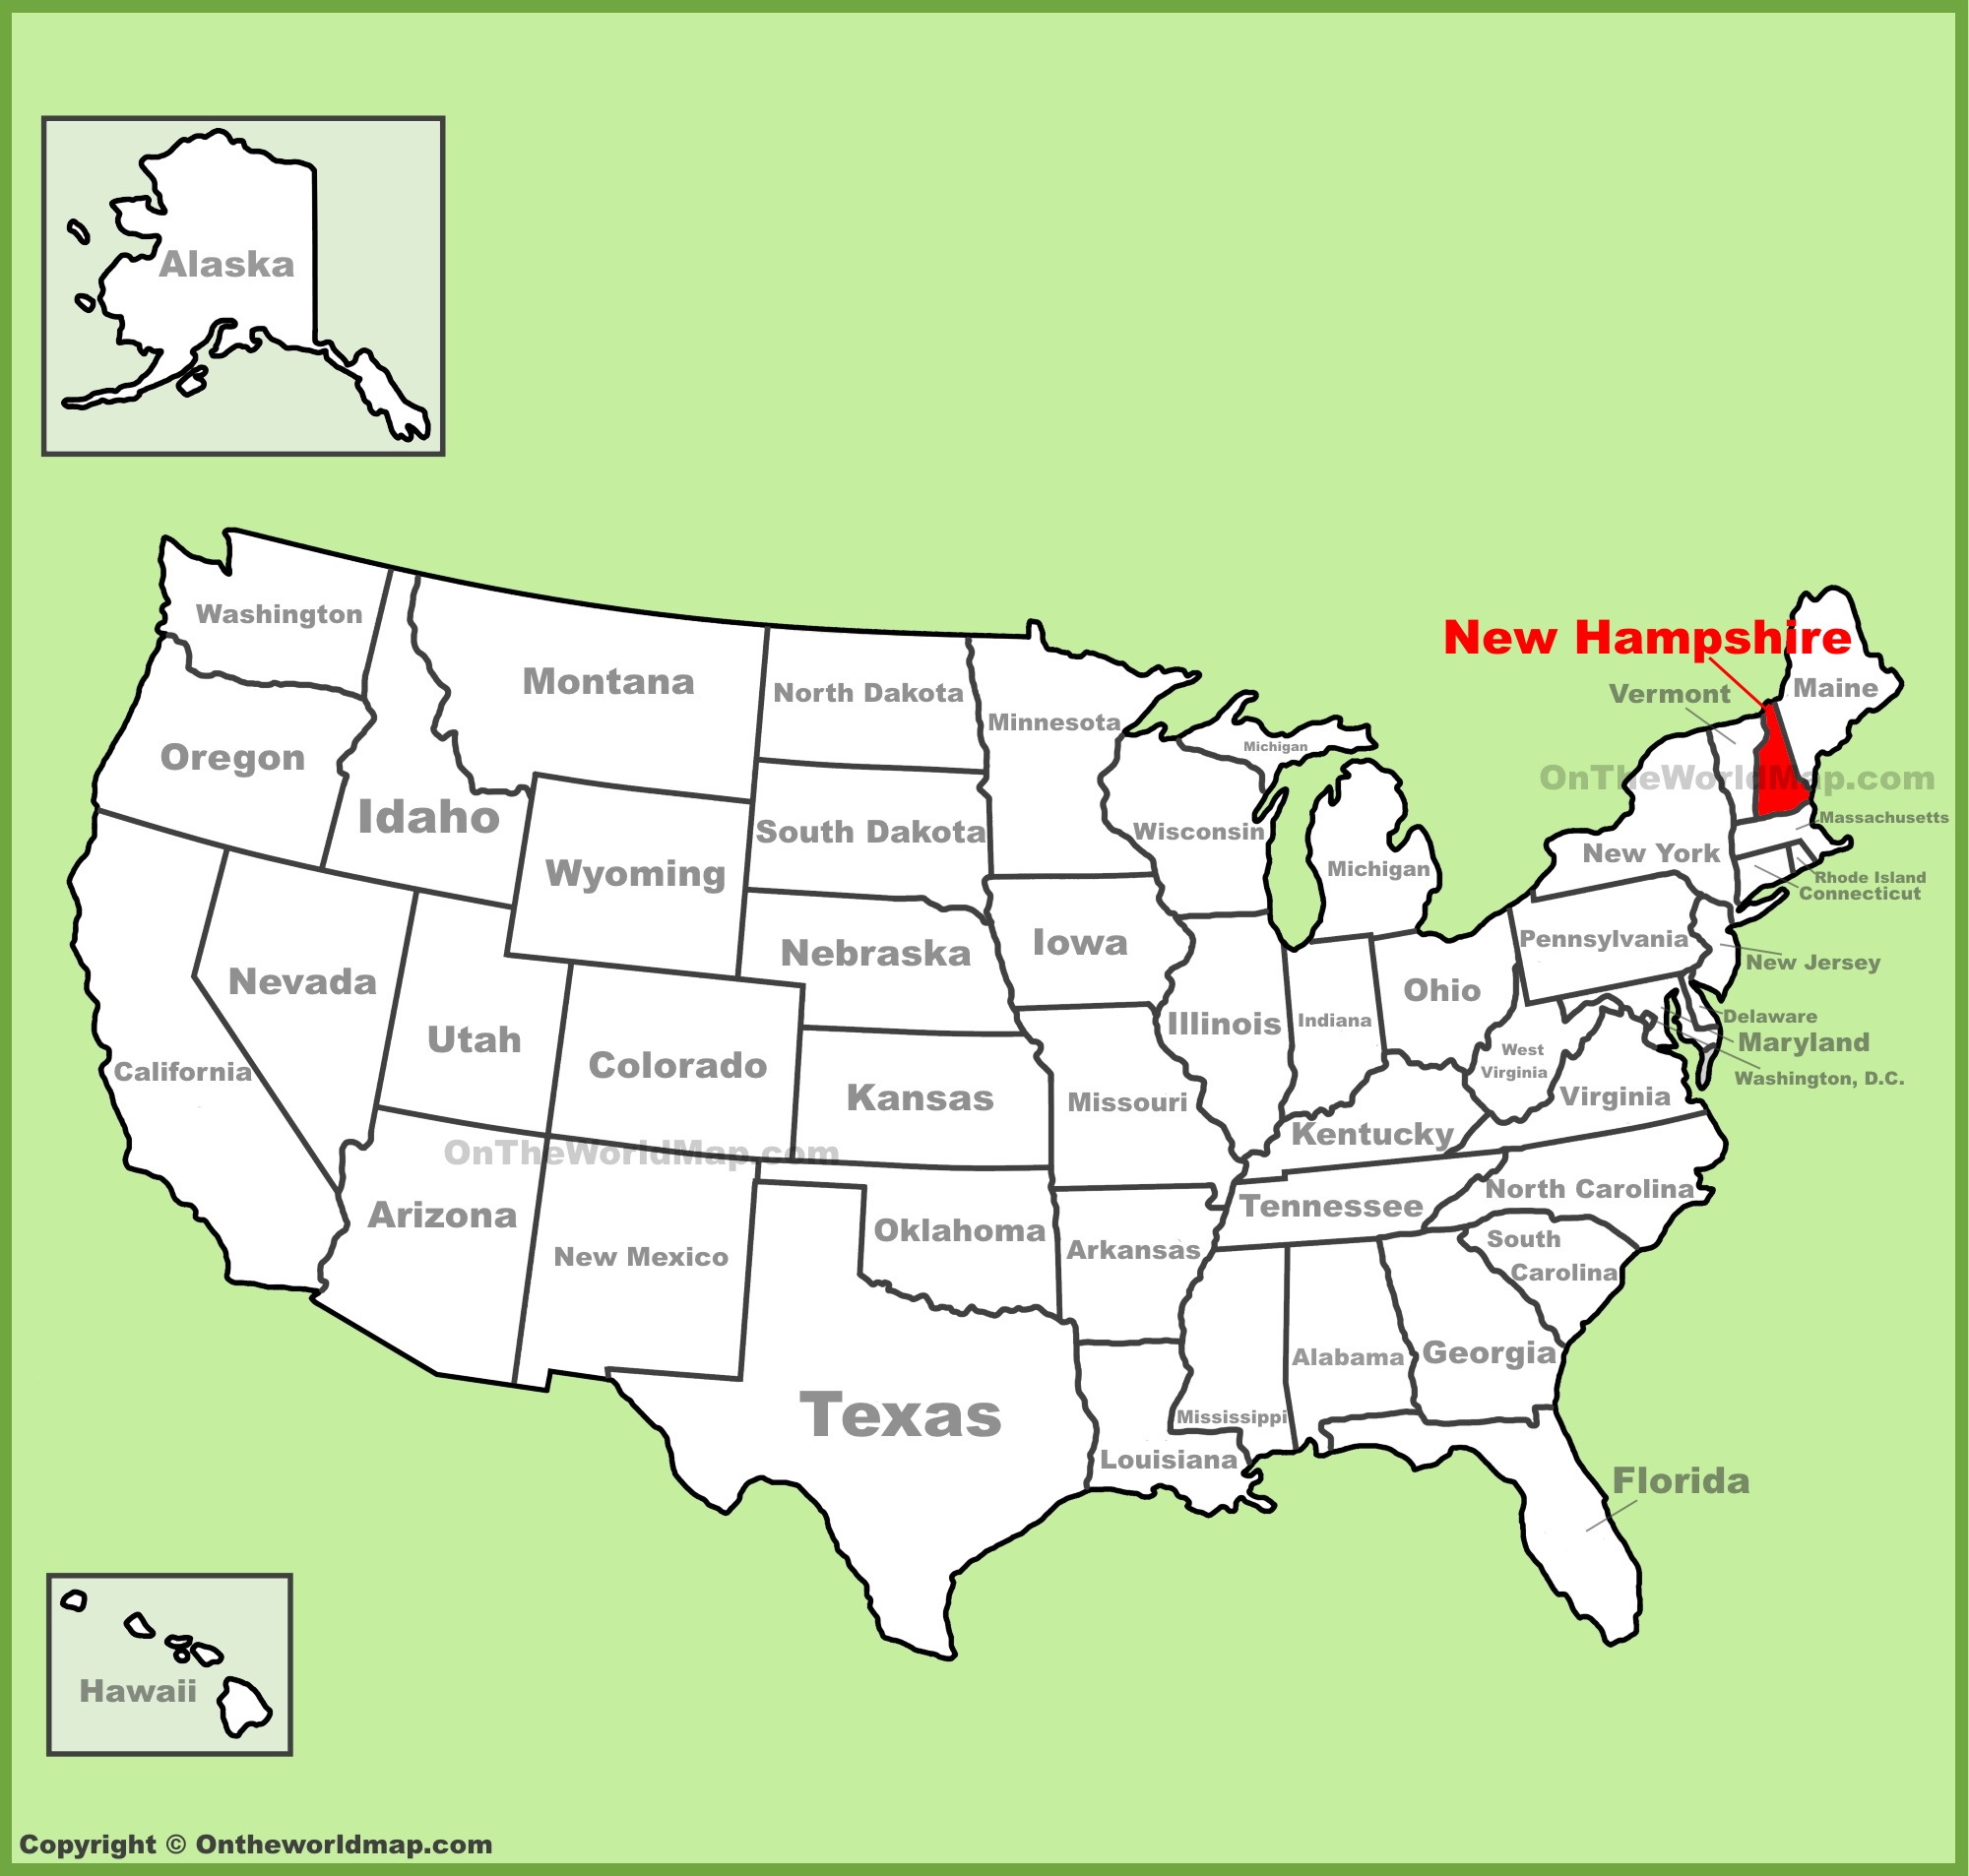 New Hampshire Location On The U S Map